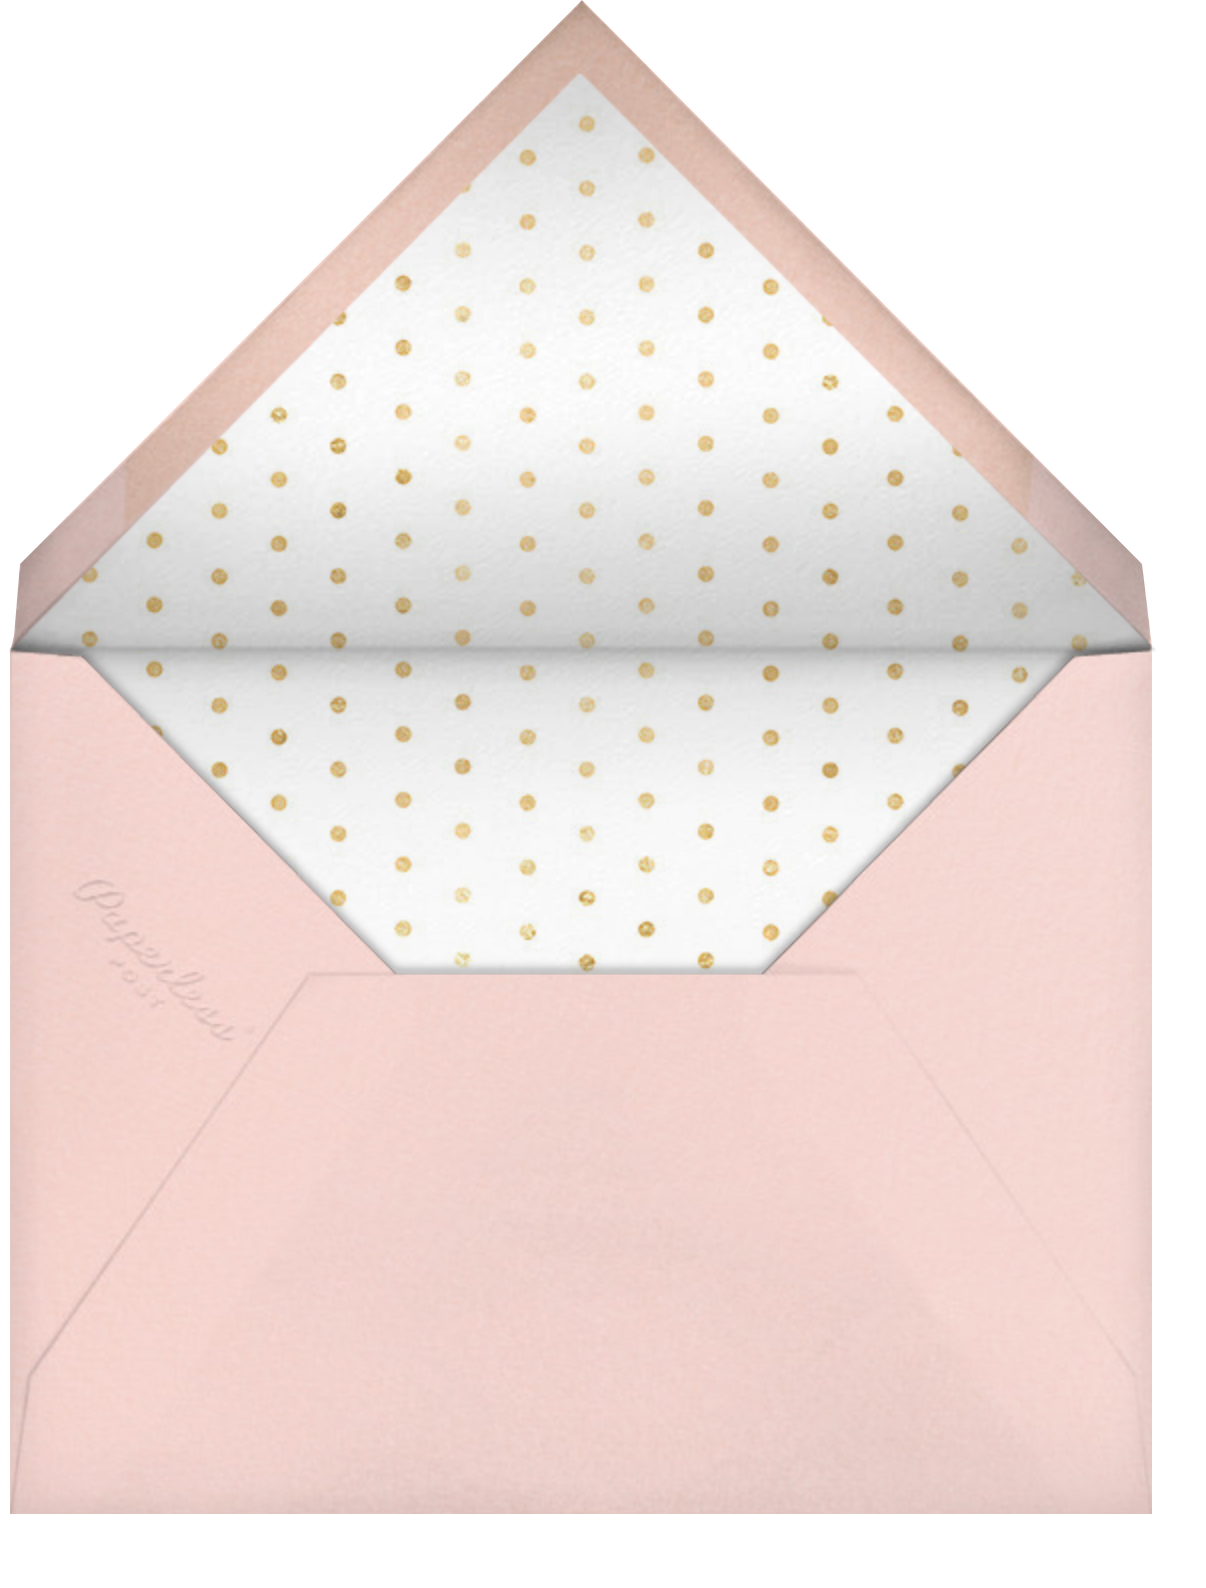 Tossed Cocktails - kate spade new york - Bachelorette party - envelope back